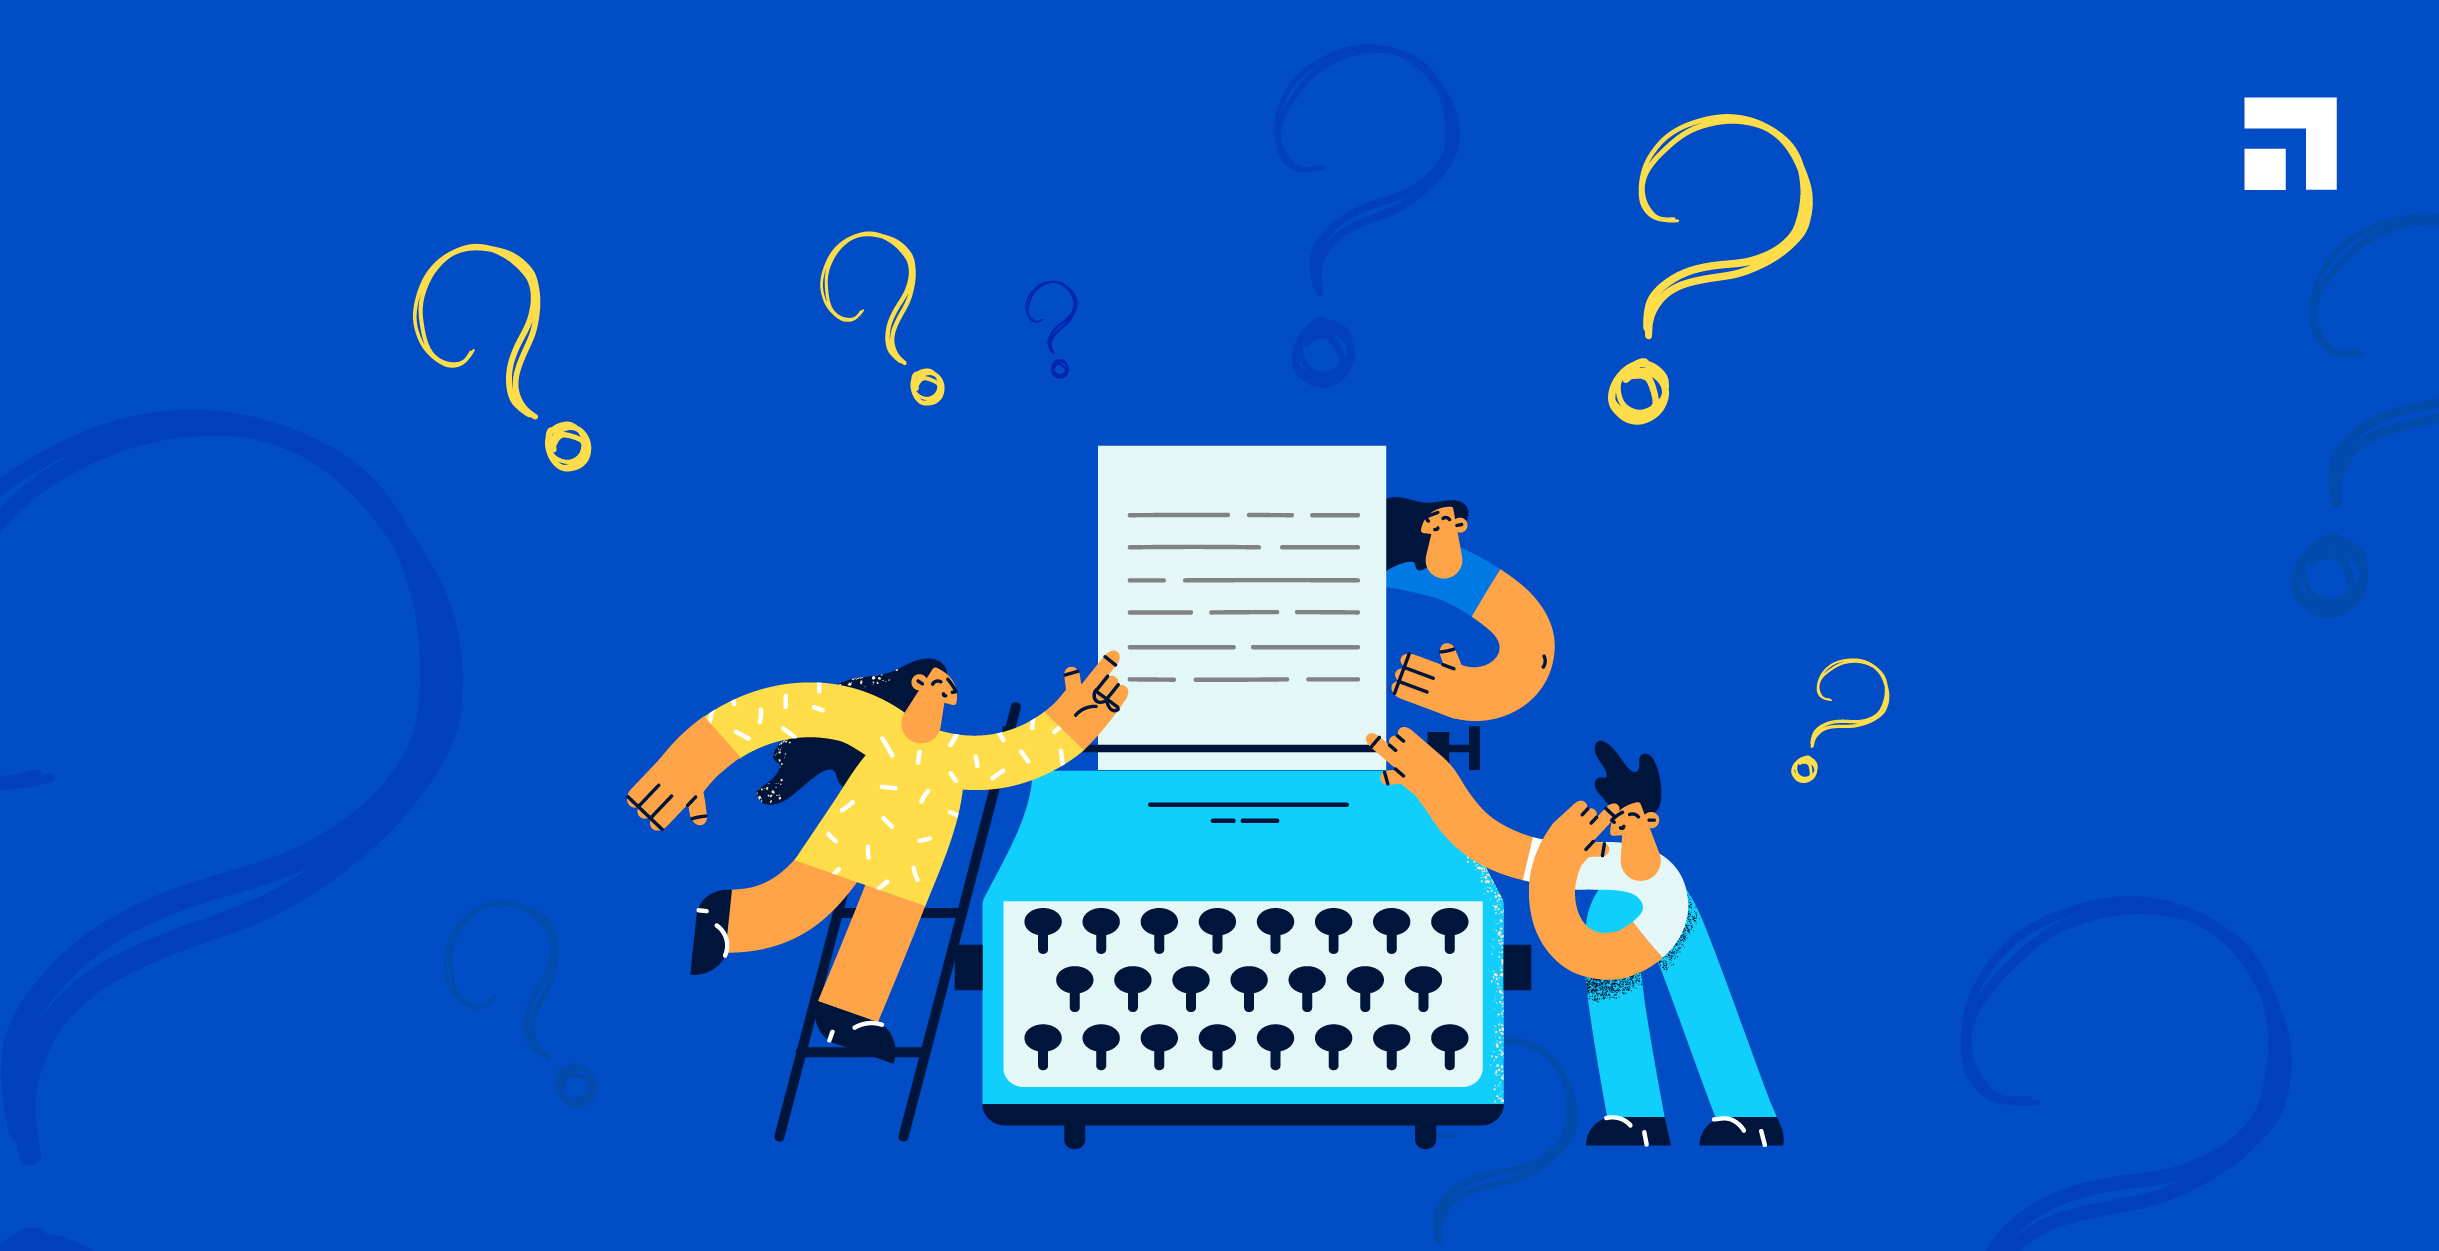 Copywriter and their role in marketing